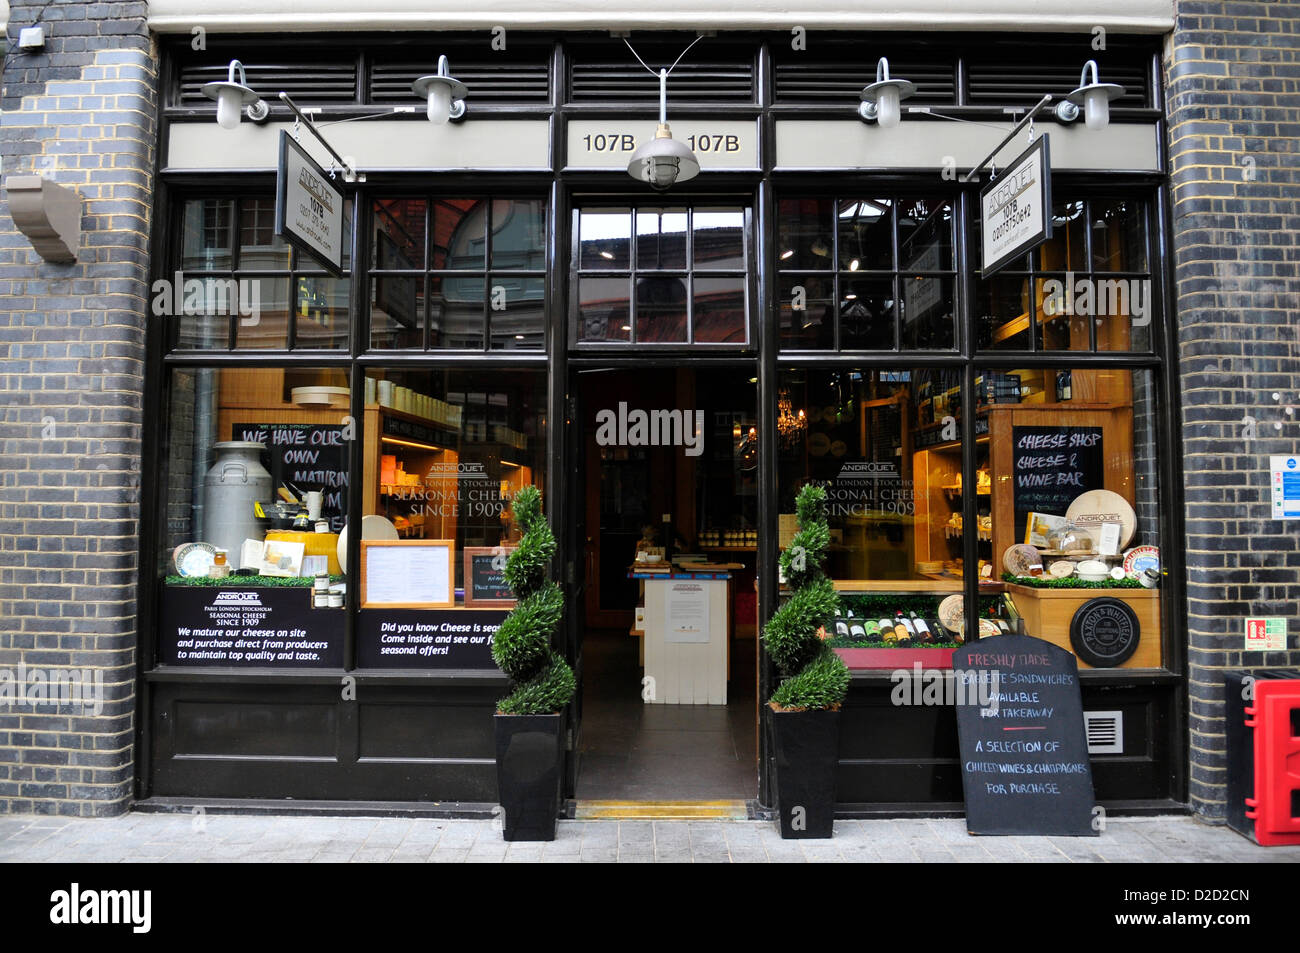 Exterior of Androuet Cheese Shop, Spitalfields Market, East London, England UK - Stock Image